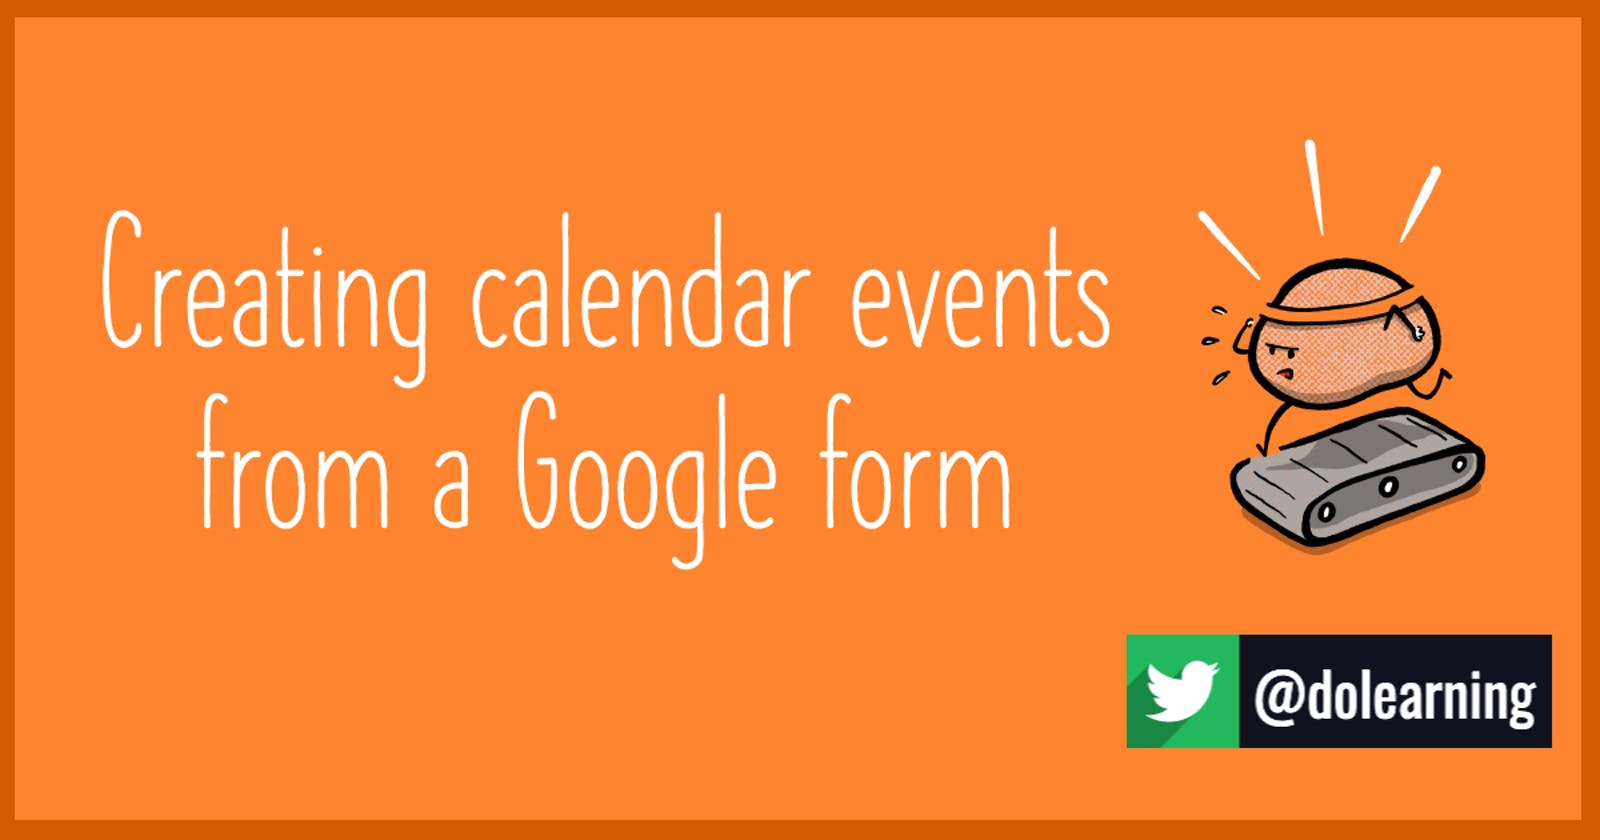 Creating calendar events from a Google form